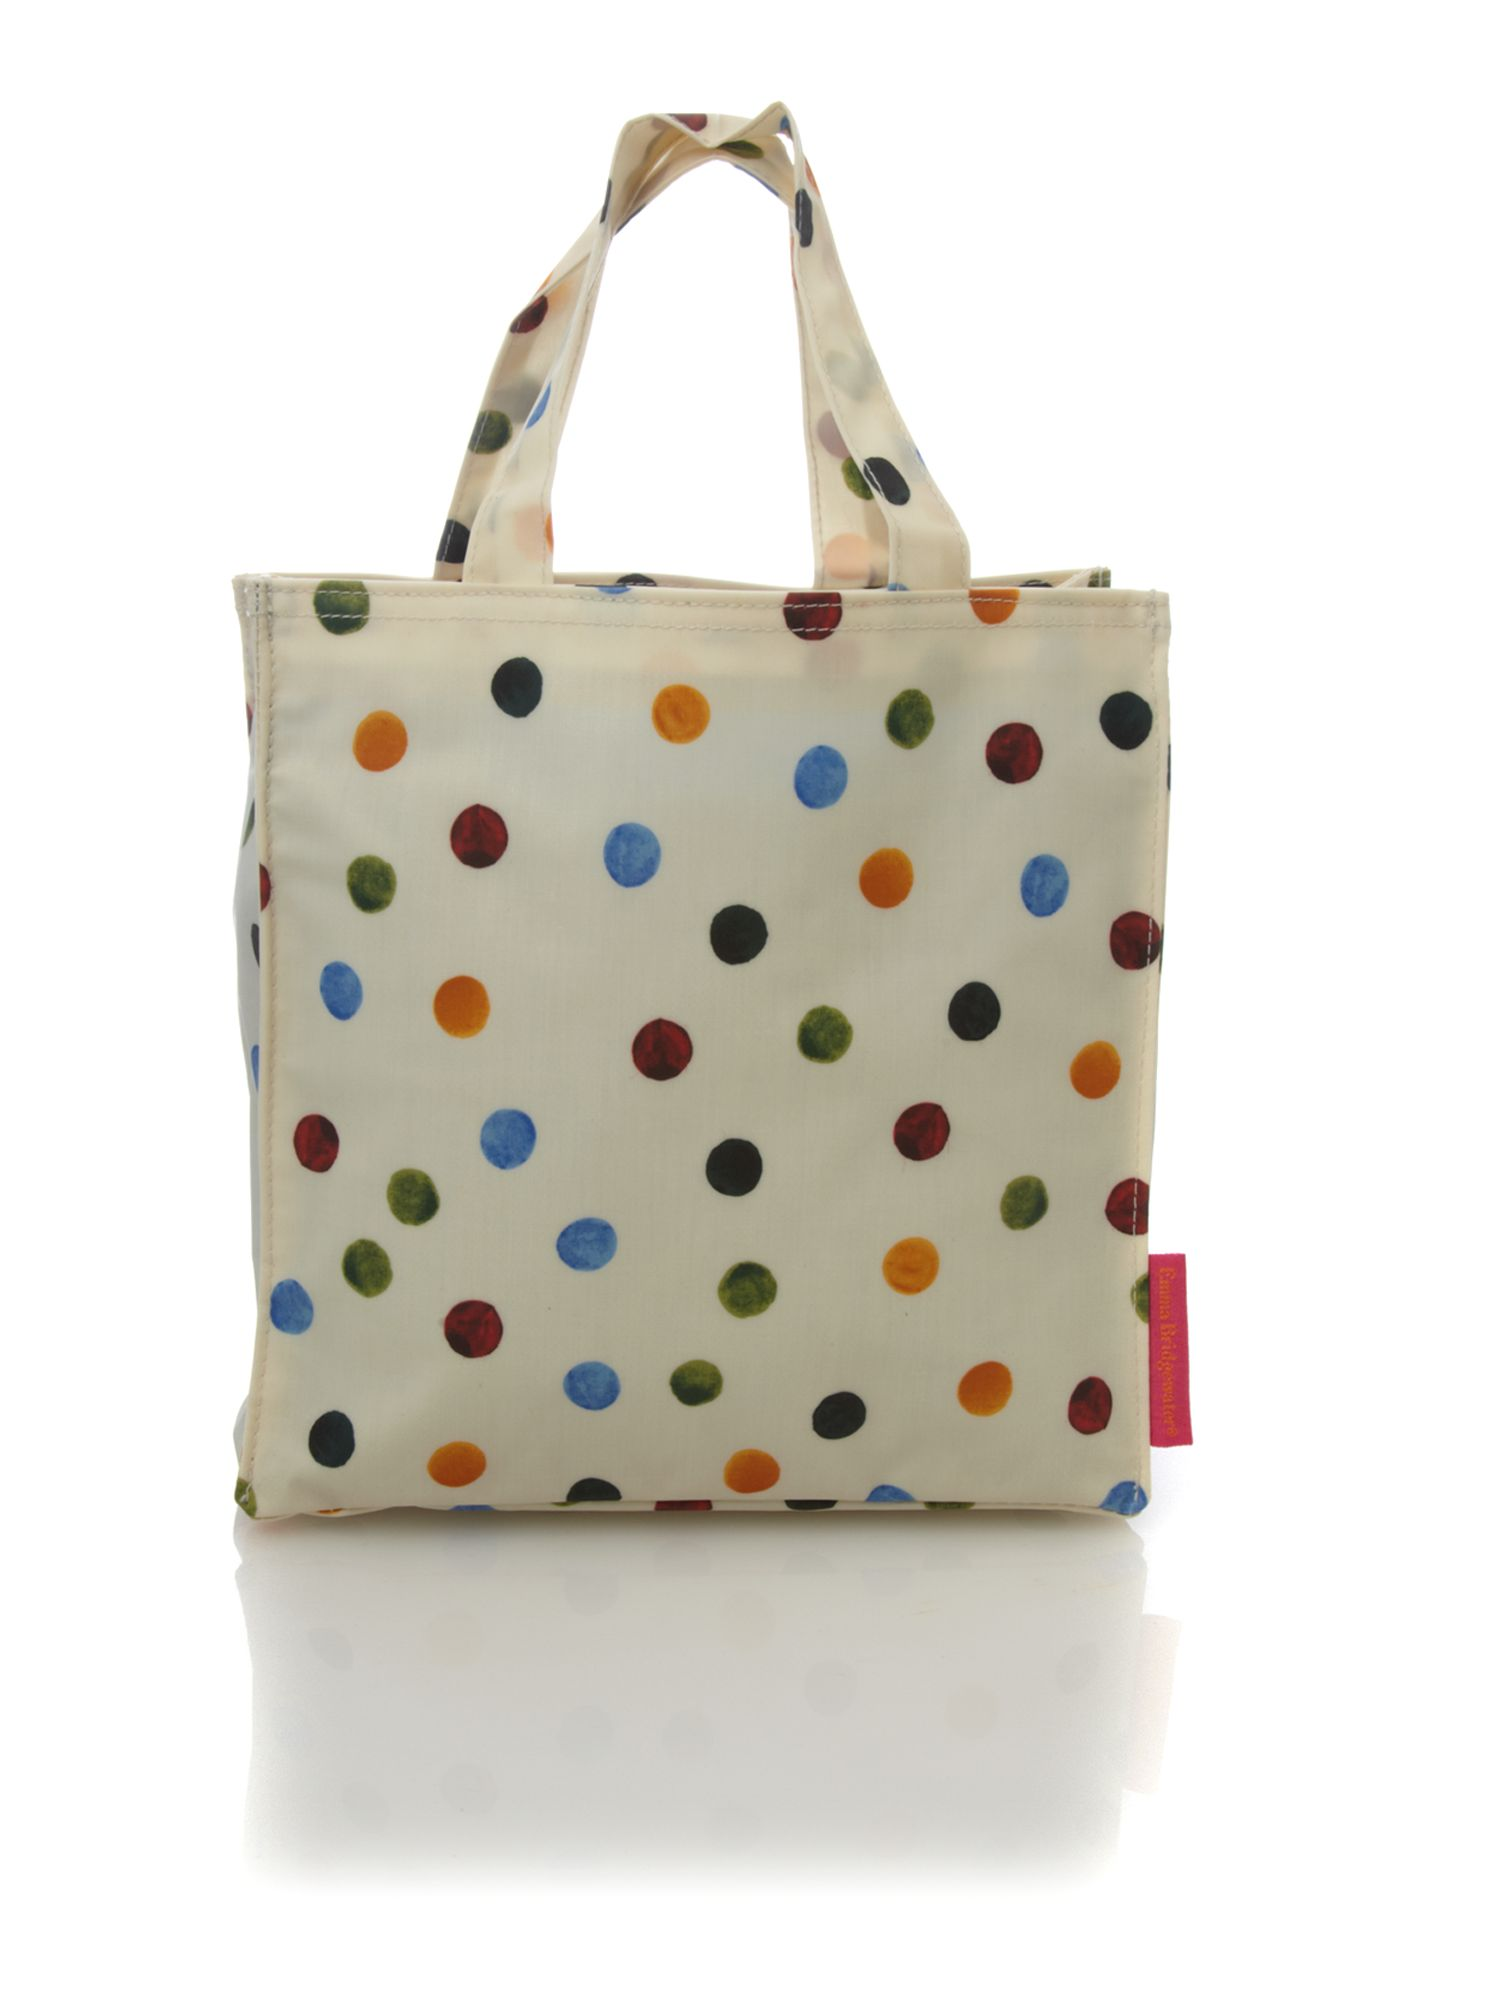 Polka dot small n/s tote